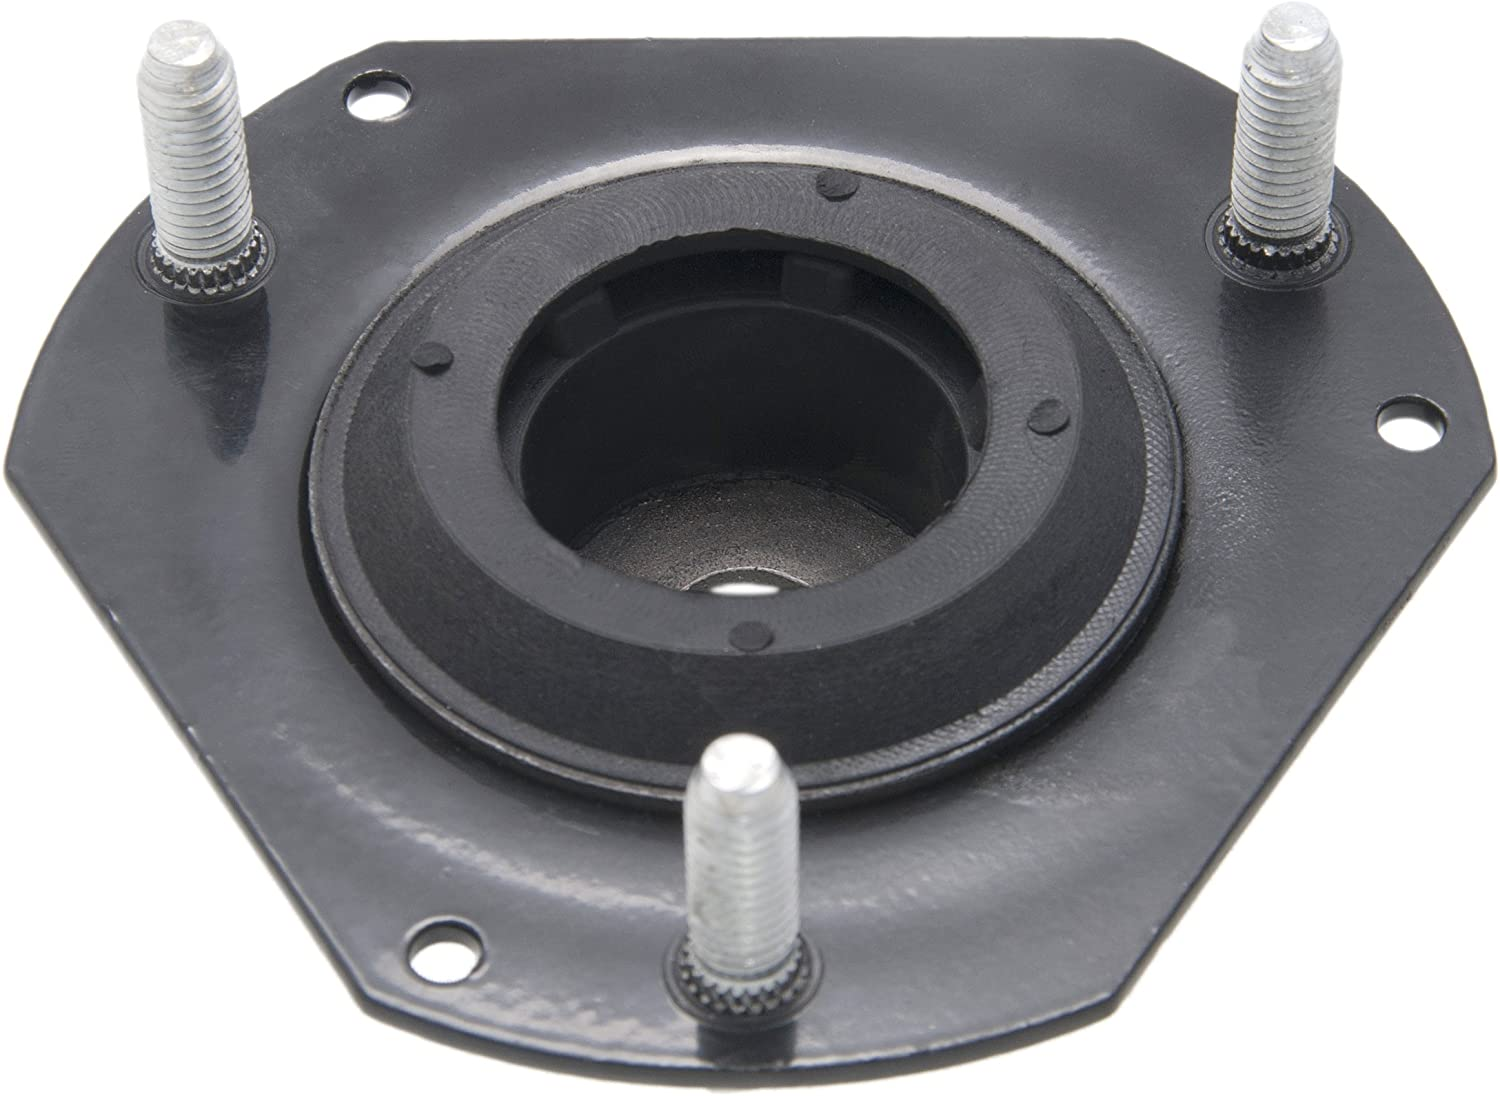 Max 53% OFF D65134380B Some reservation - Front Shock Mazda For Absorber Support